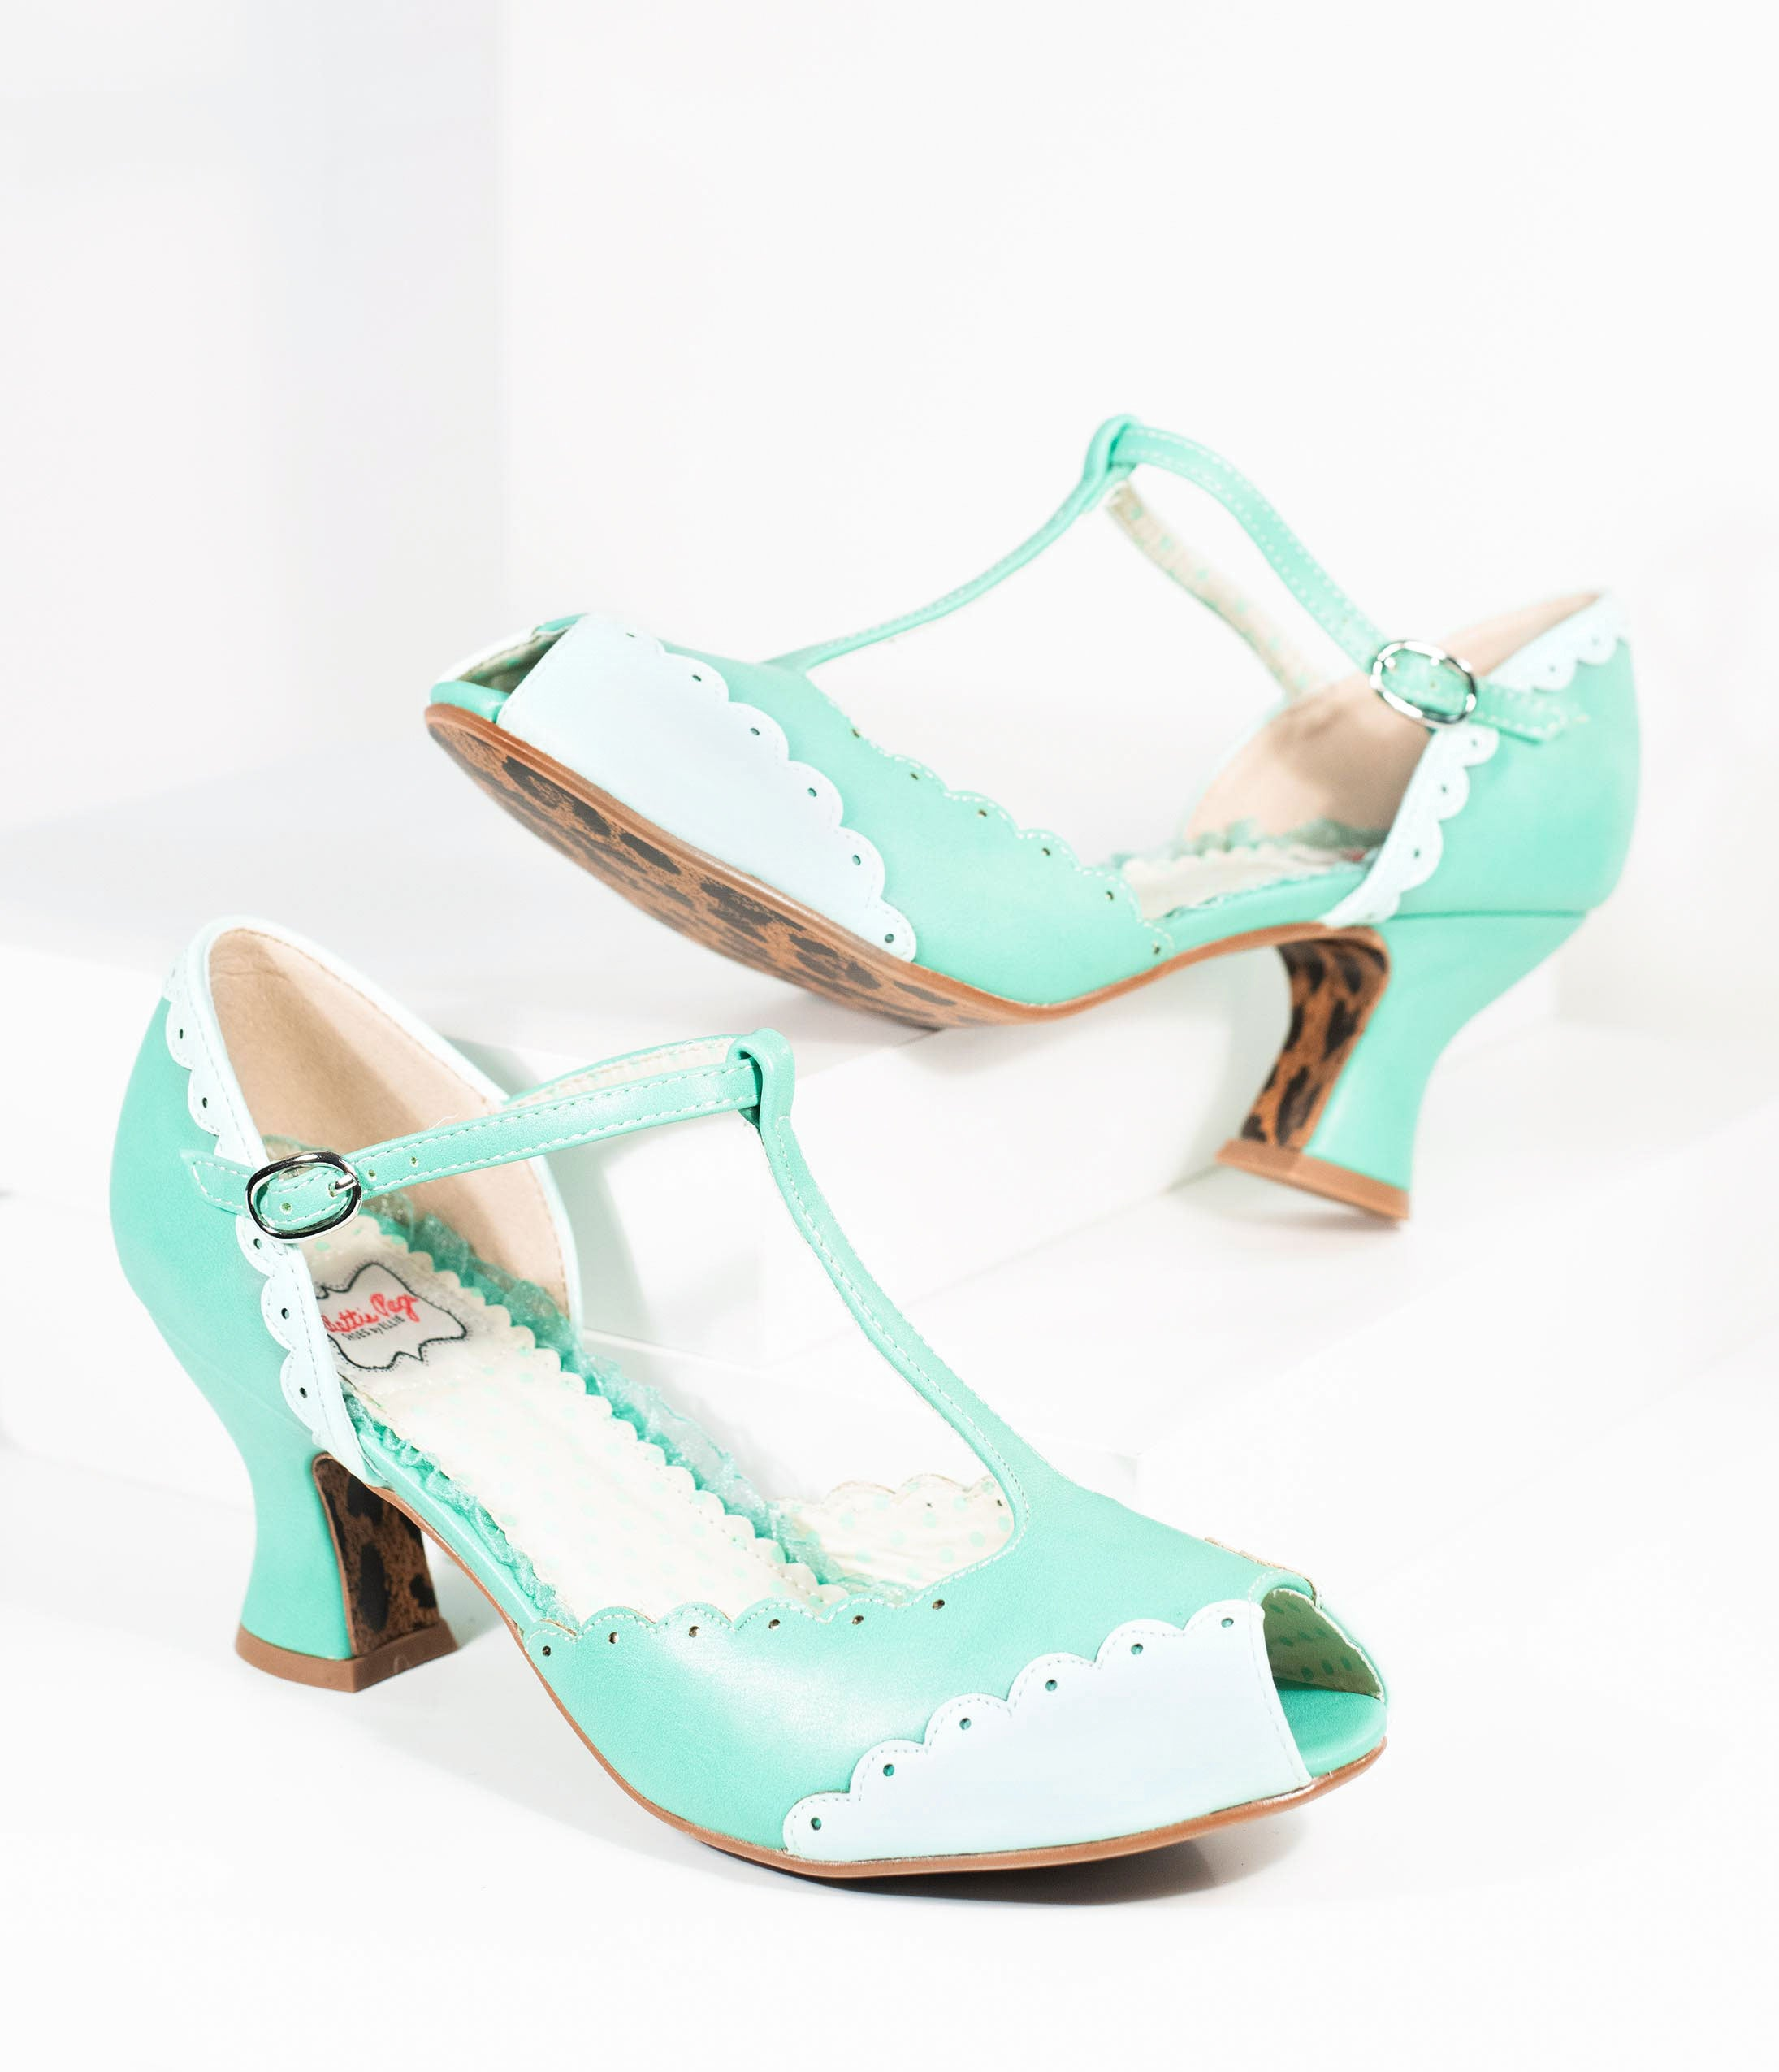 Vintage Style Shoes, Vintage Inspired Shoes Bettie Page 1940S Turquoise Mint Scalloped Peep Toe T-Strap Carlie Heels $82.00 AT vintagedancer.com